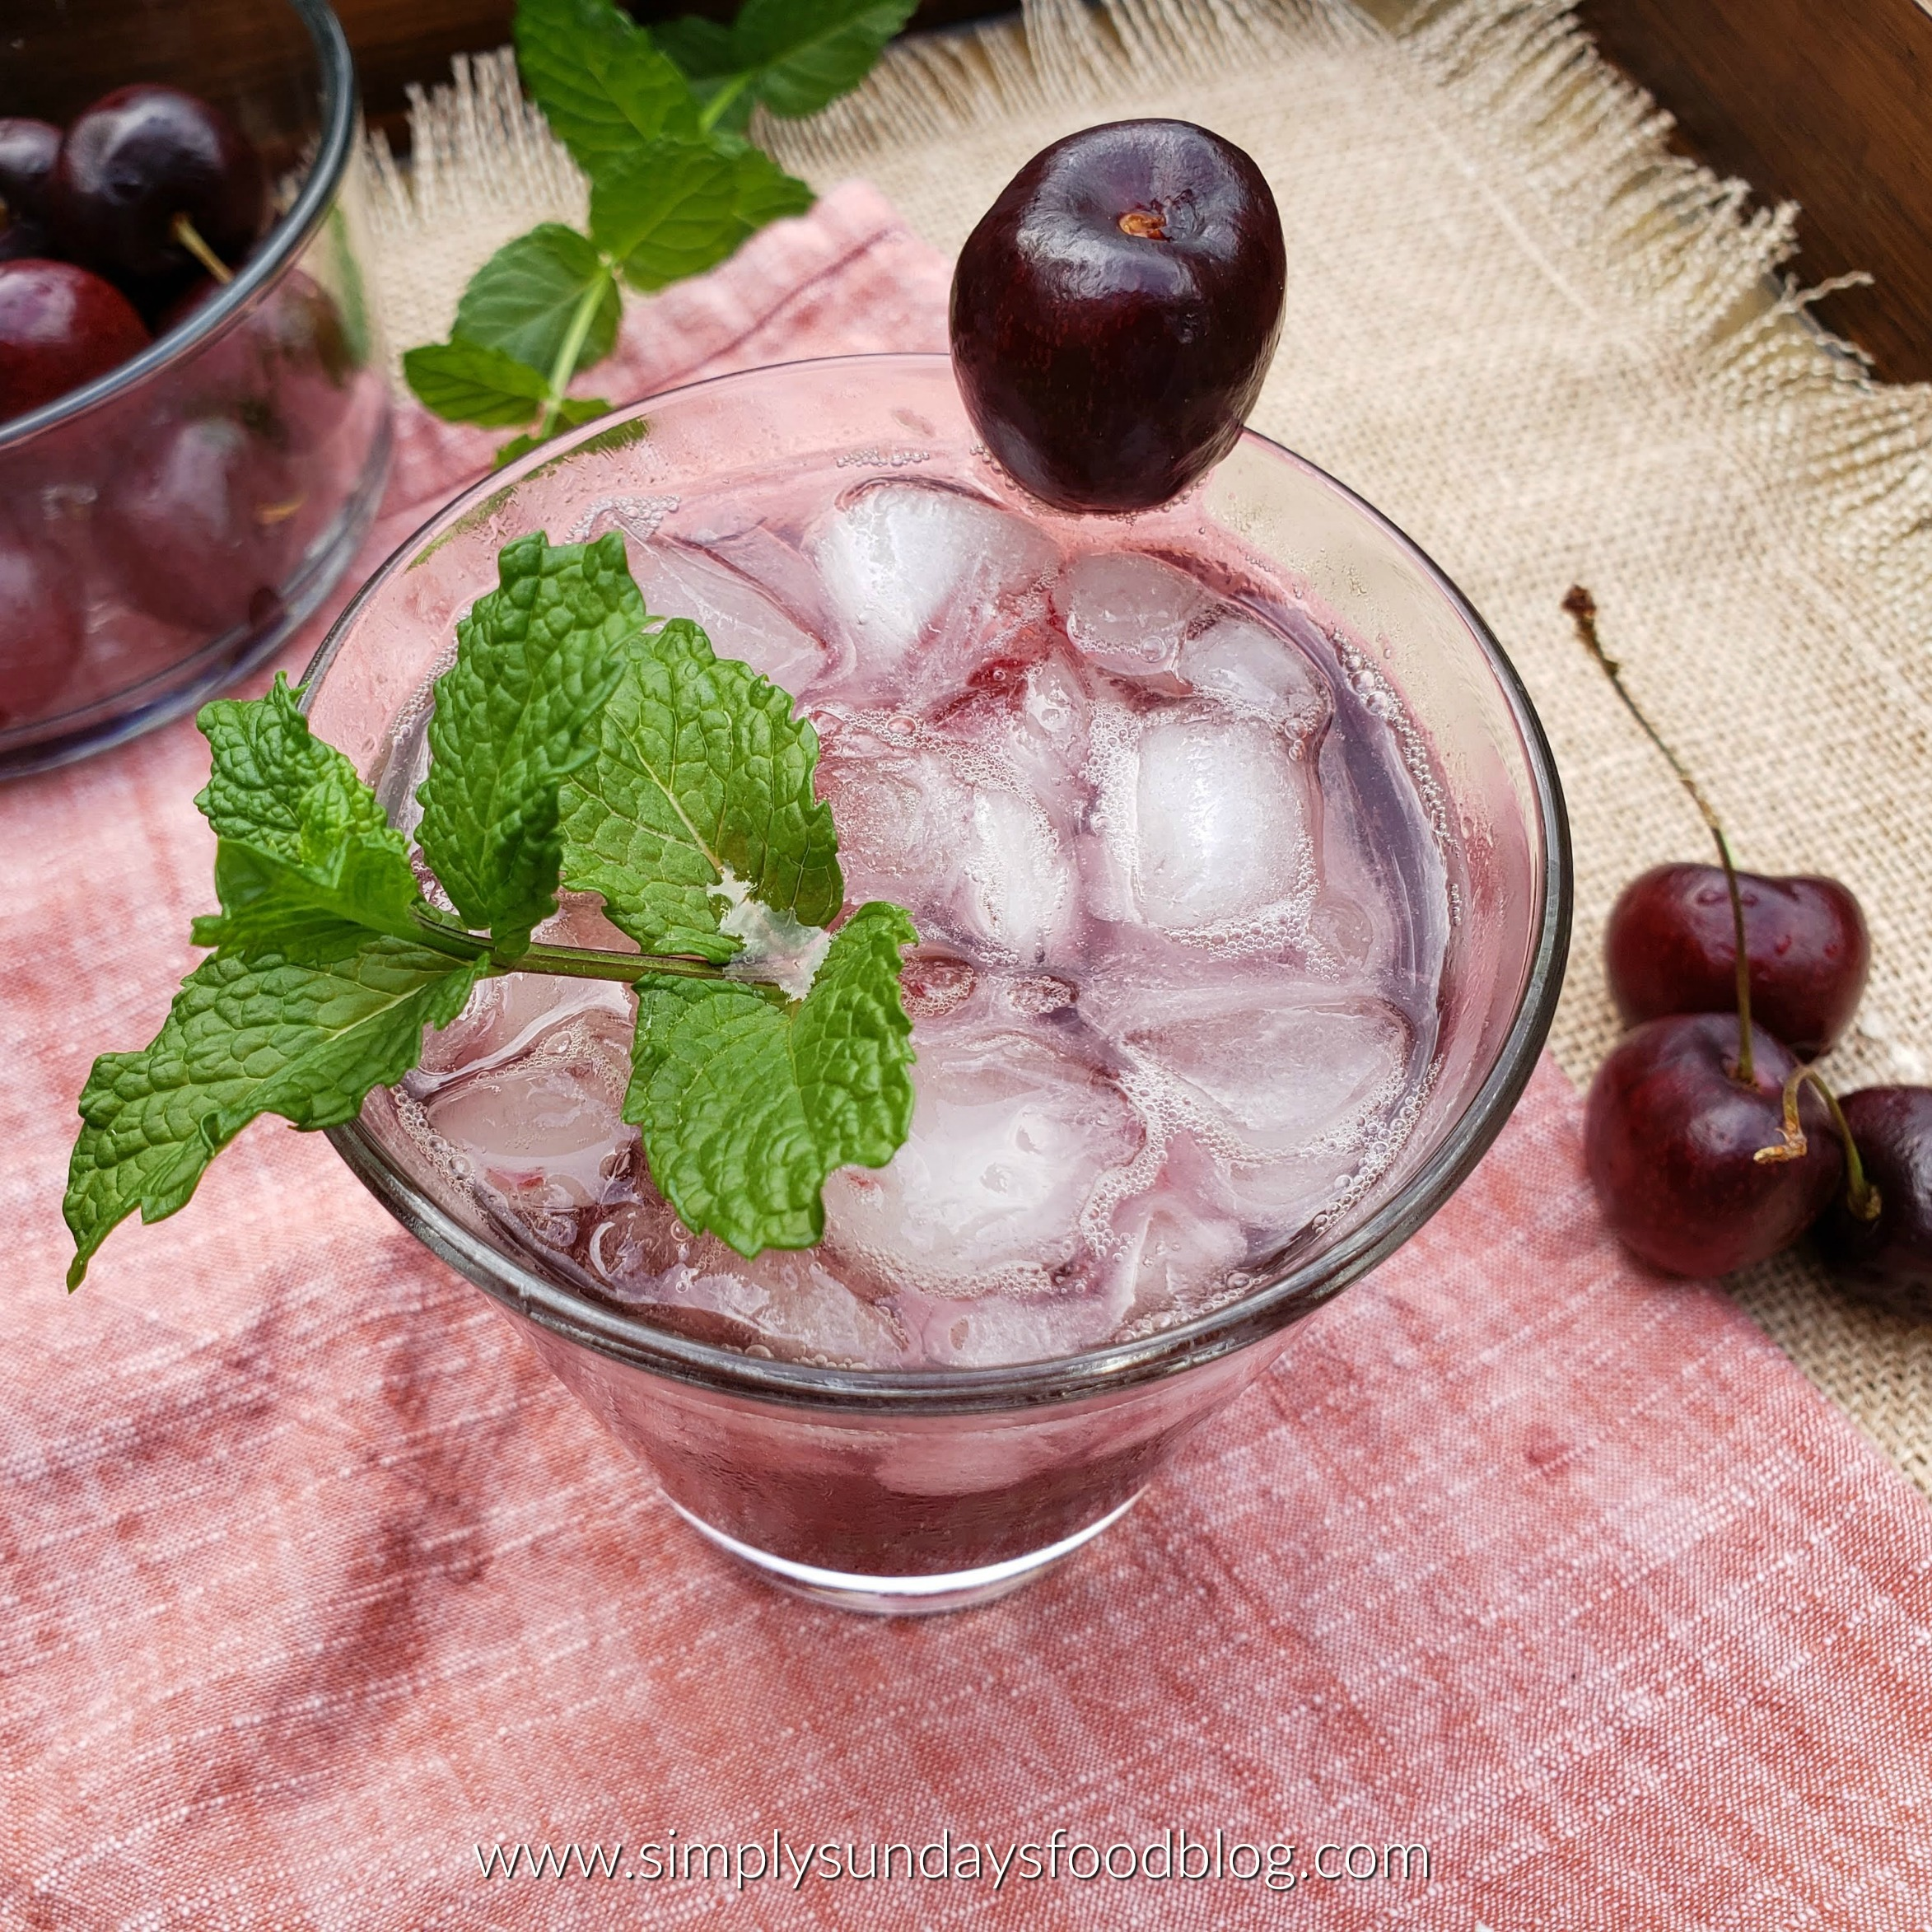 A cocktail glass with a Whiskey Cherry Smash garnished with fresh mint and a cherry